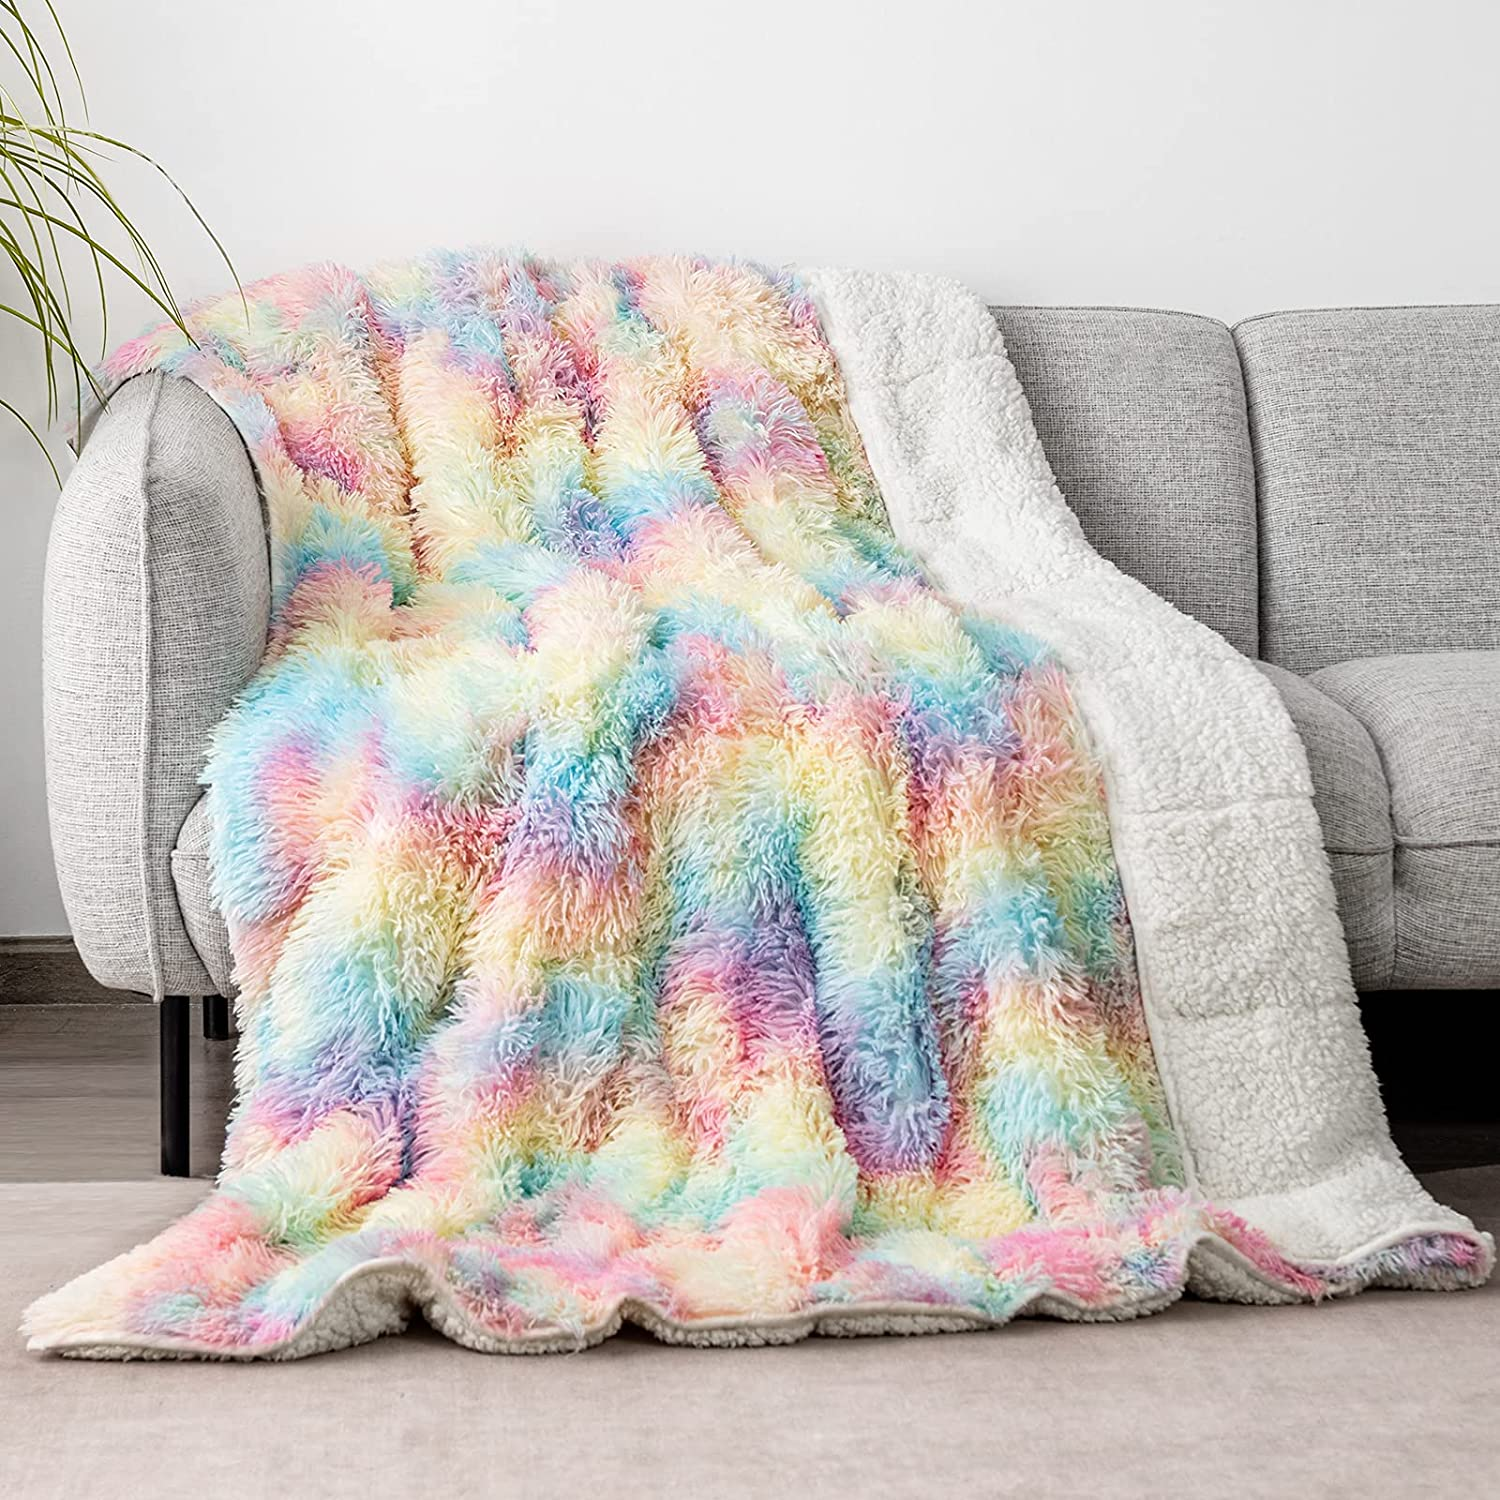 Faux Fur Weighted Blanket 15lbs Clearance SALE! Limited time! Popular standard for Adult 48x72 Inches Cottonbl